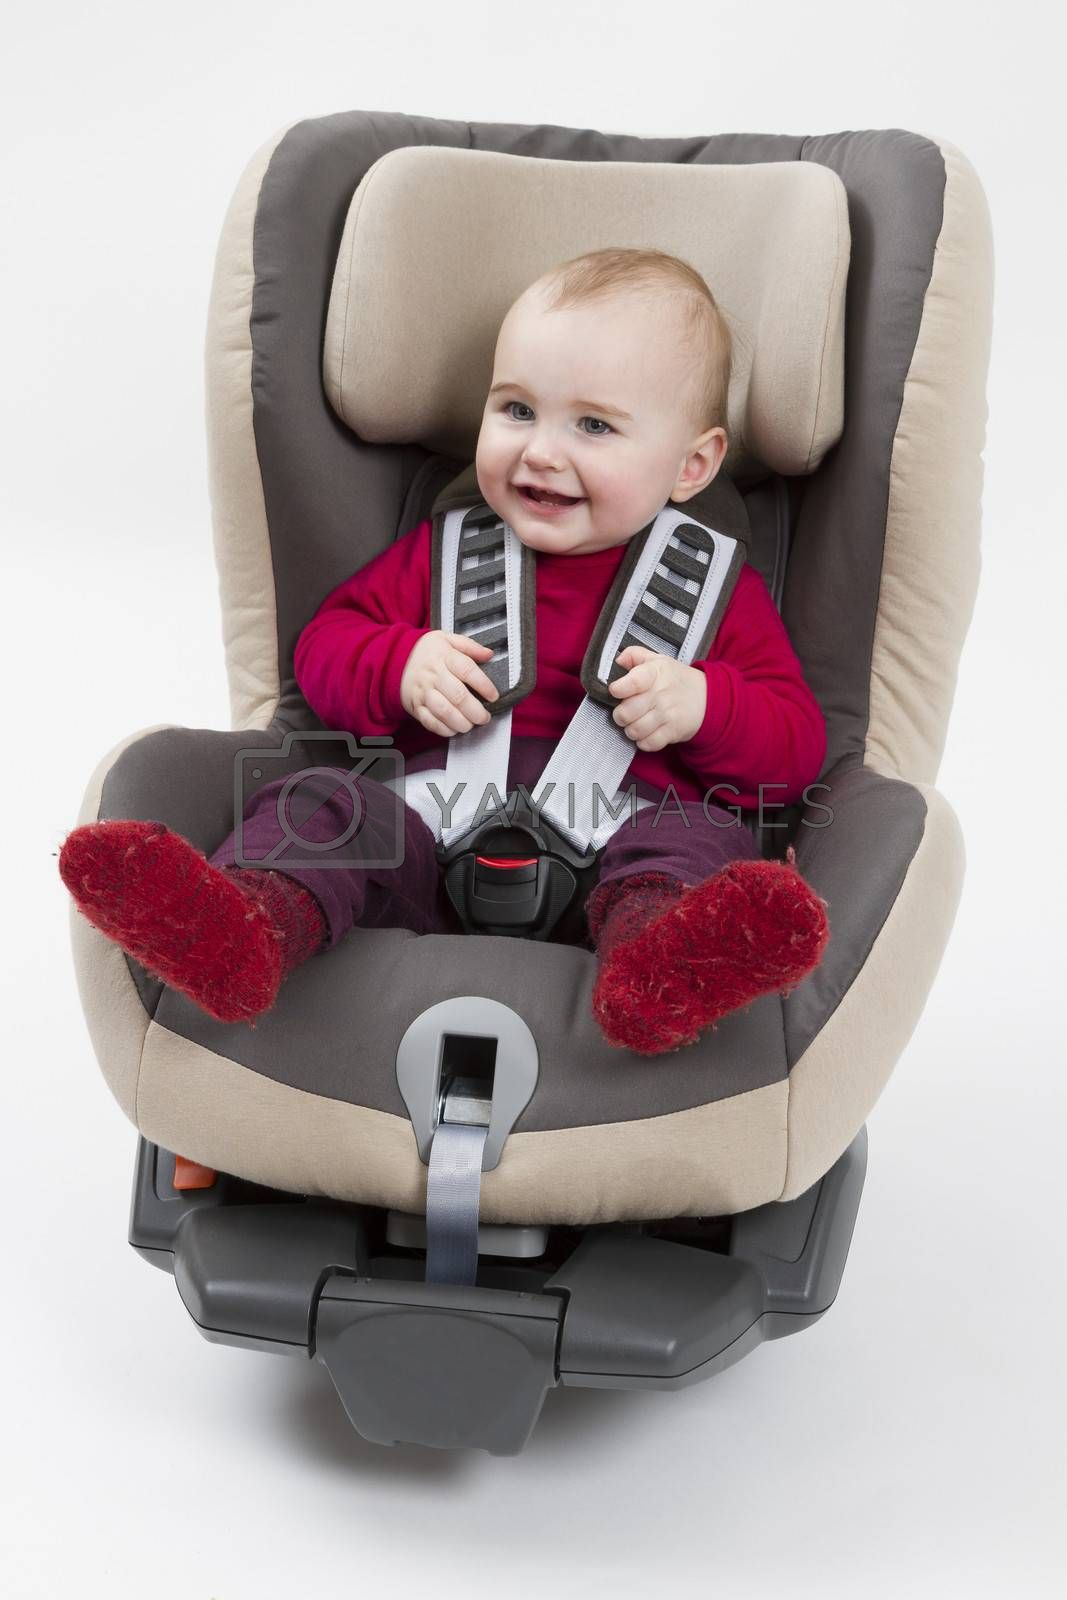 booster seat with child for a car in light background. studio shot